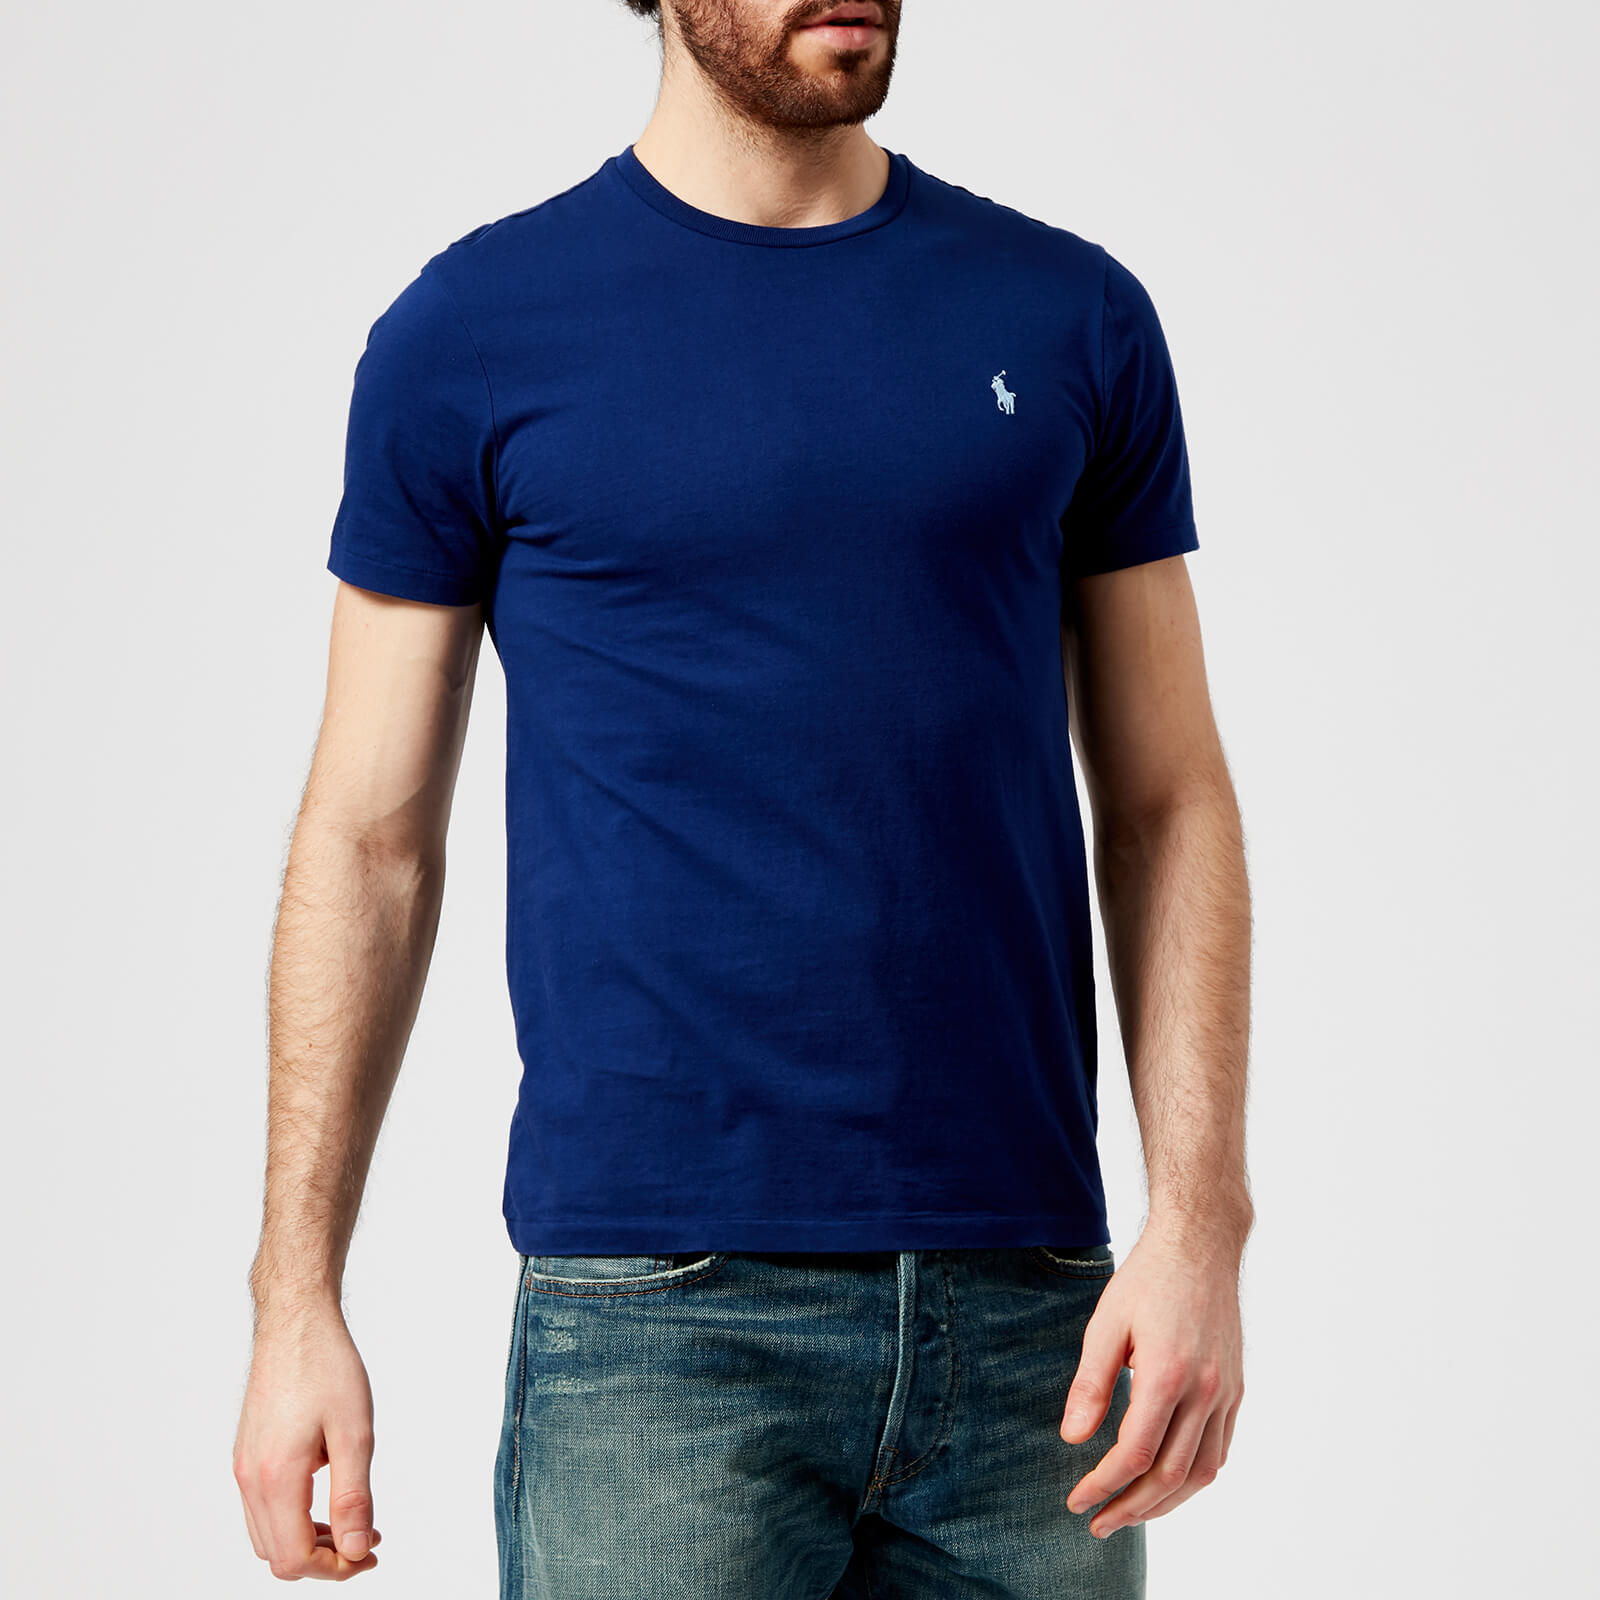 f8cd5f93a49 Polo Ralph Lauren Men s Basic Crew Neck Short Sleeve T-Shirt - Fall Royal -  Free UK Delivery over £50